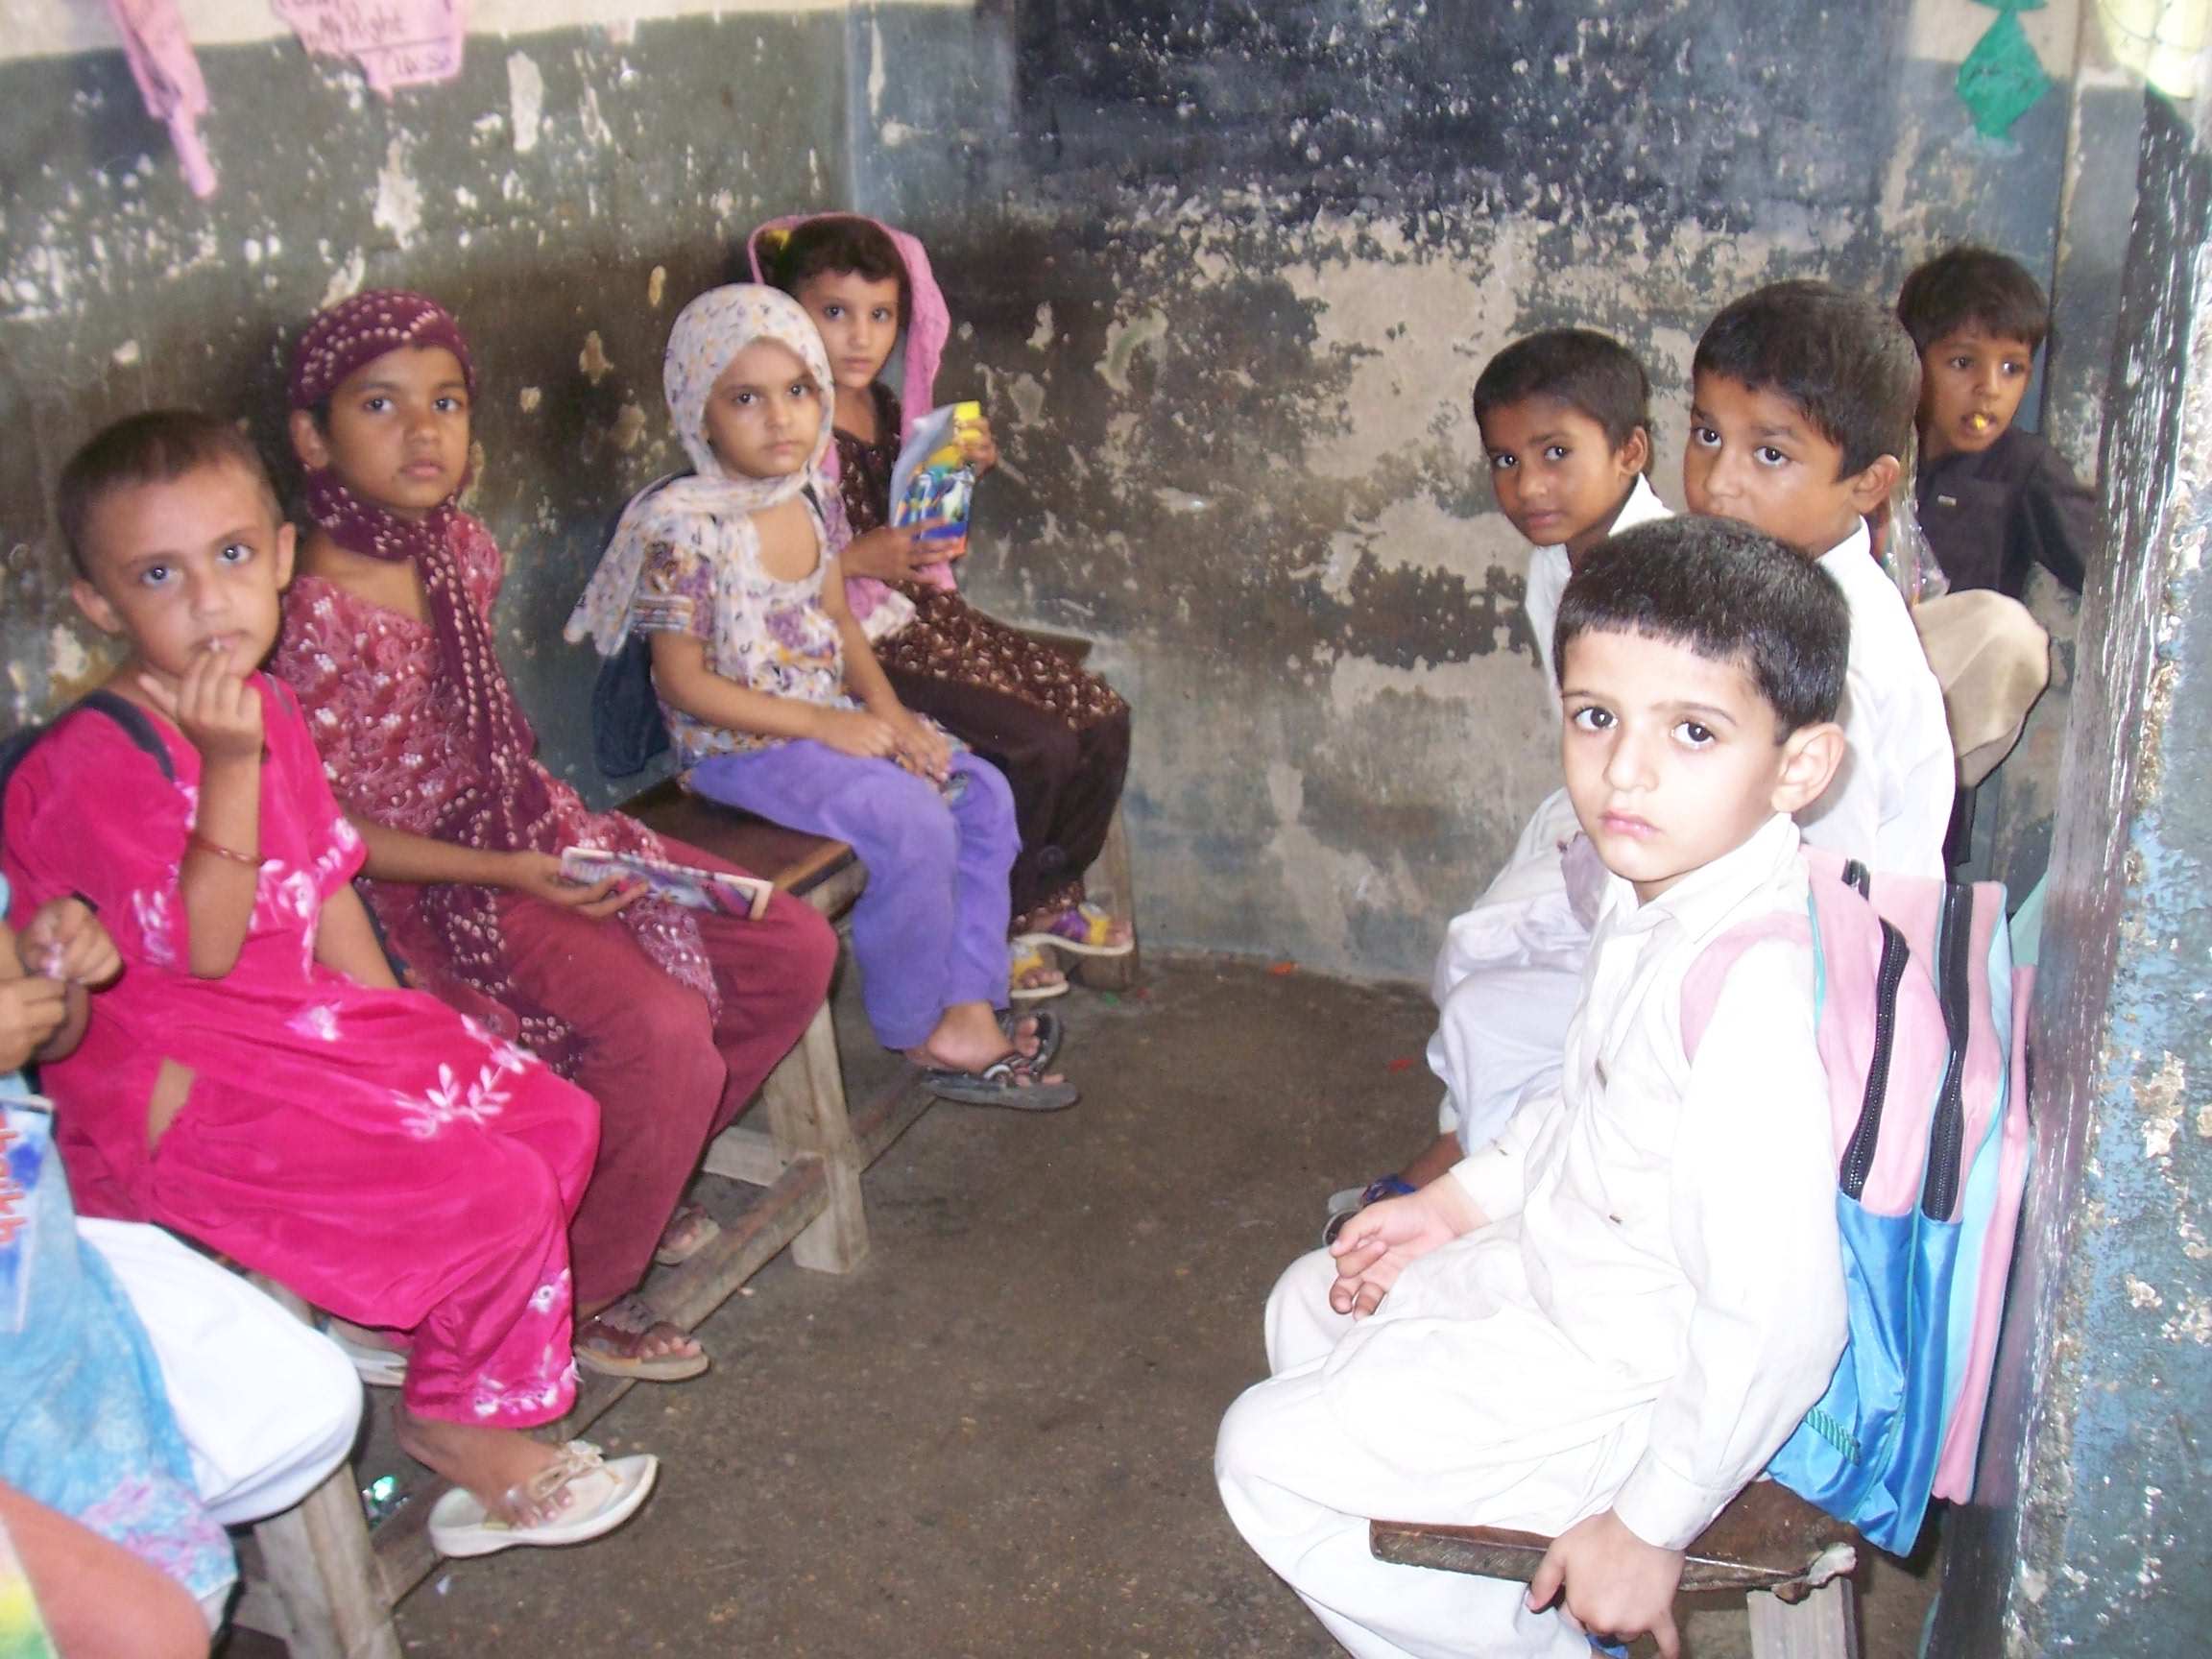 down fall in education in sindh Hyderabad: in hope to revive the vanished glory public schools and fulfilling his promise made in sindh assembly, provincial minister for education, sardar ali shah has enrolled his only daughter in government school of hyderabad eight years old kaif-ul-warda was enrolled in government school.